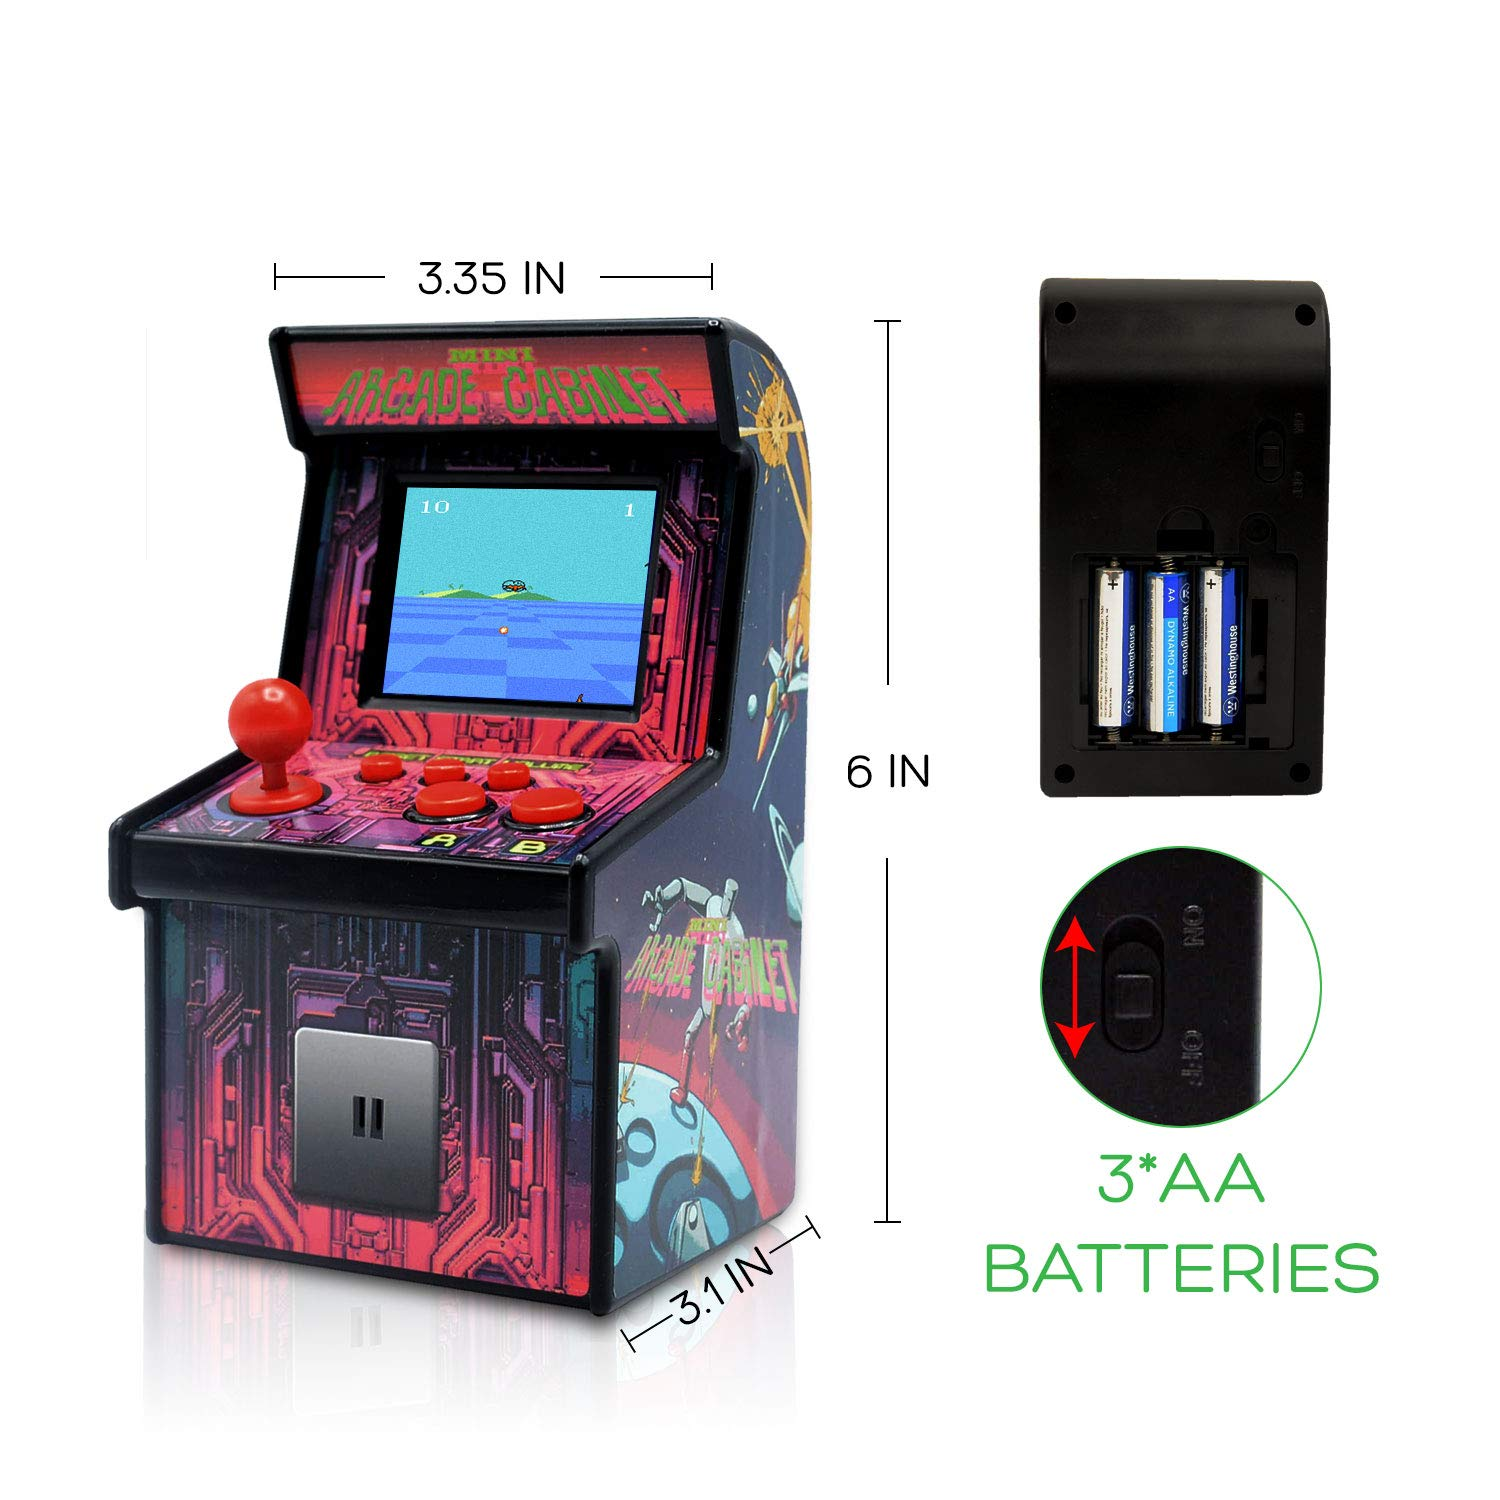 Funderdome Battery Powered Mini Arcade Game, Arcade Machine, Retro Tiny Video Game Arcade Cabinet, Portable Electronic Handheld Gaming Console for Kids with 200 Classic Video Games by Funderdome (Image #4)